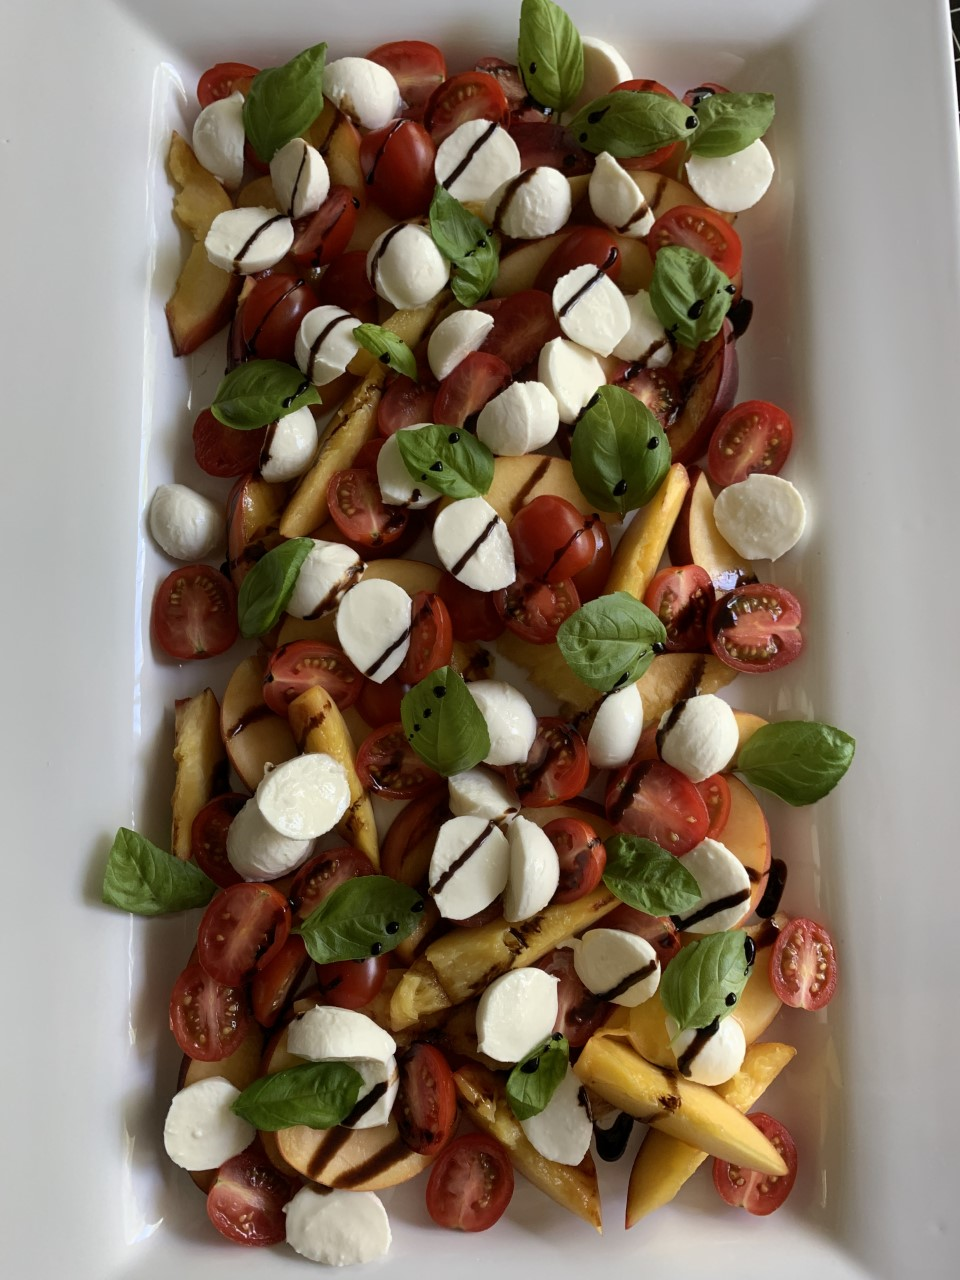 Grilled Peaches with mozzarella balls, tomatoes , basil, and balsamic reduction